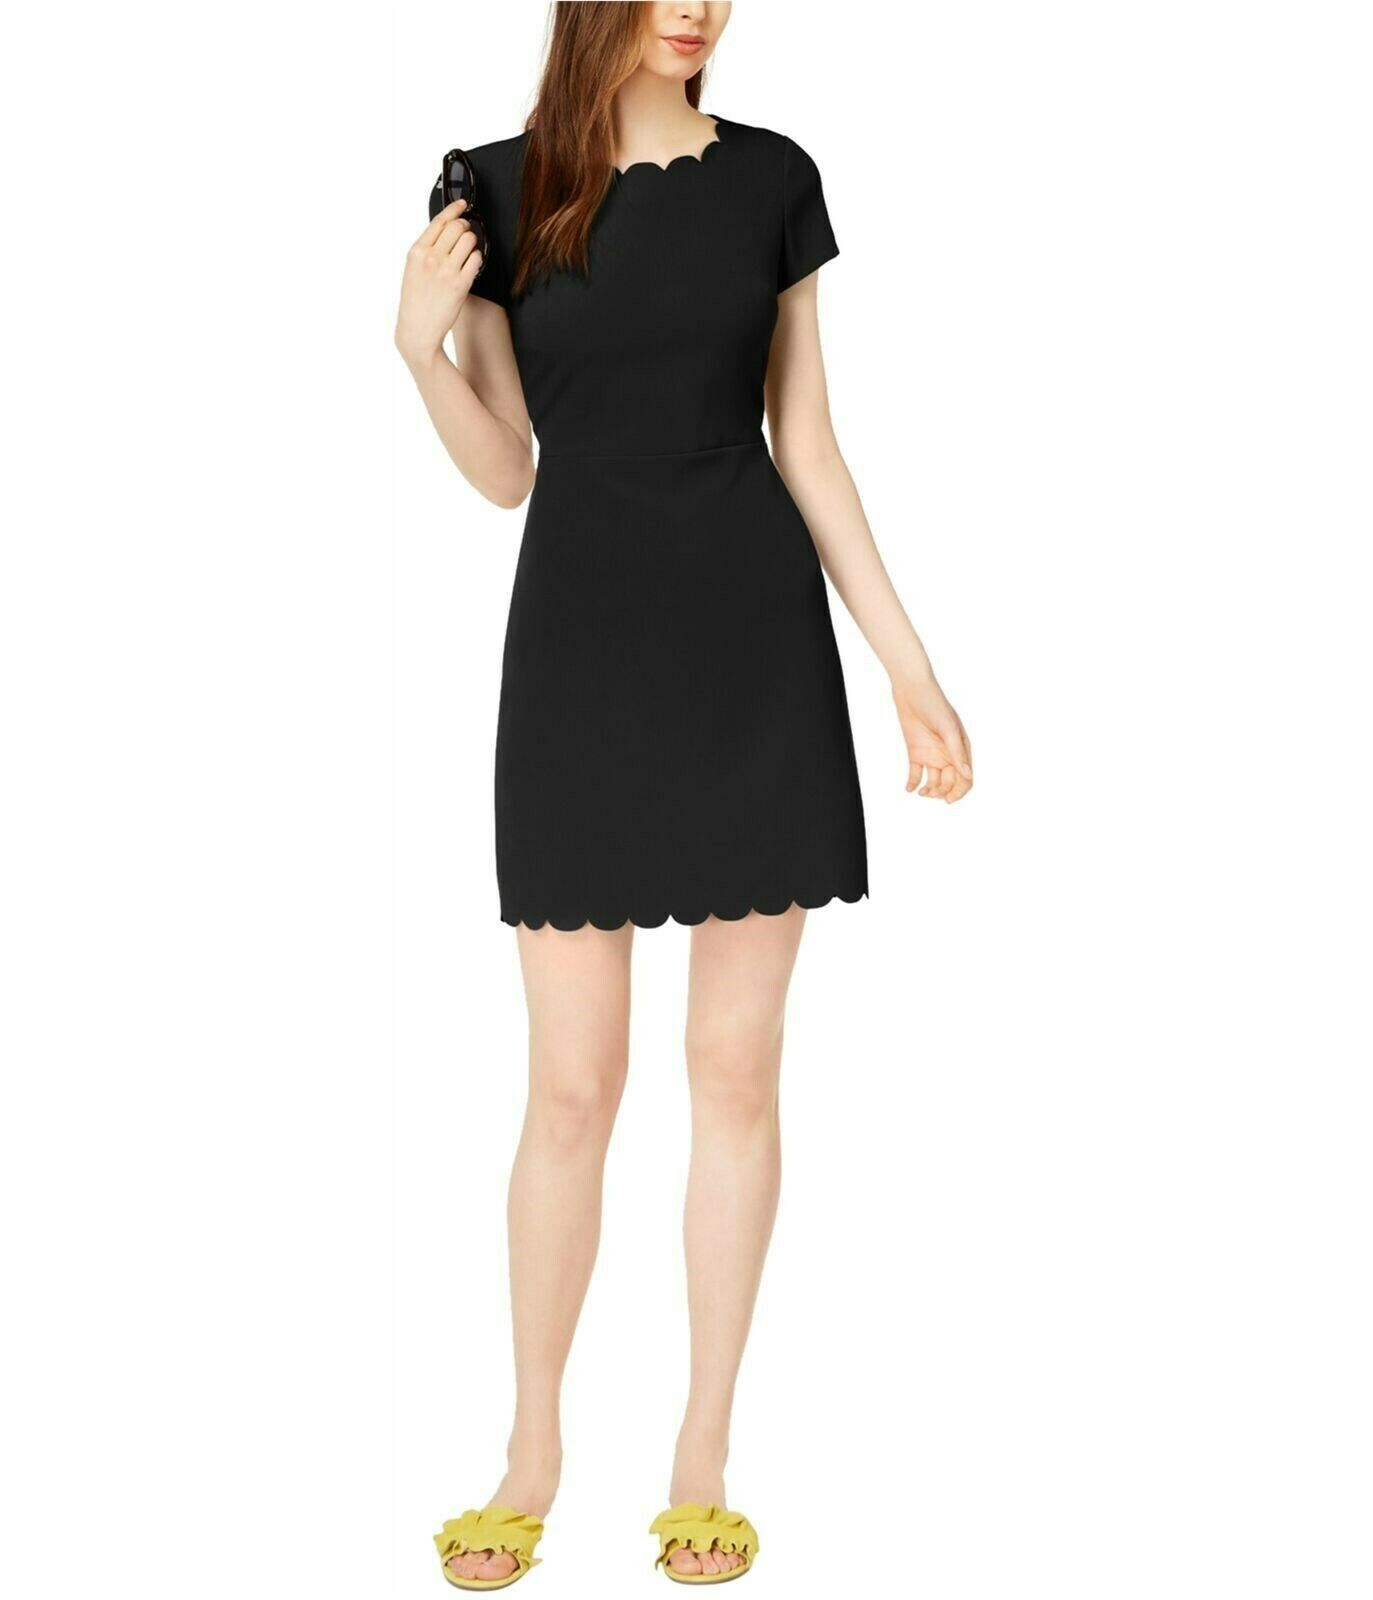 Primary image for Maison Jules Womens Scalloped Fit & Flare Dress Black Size 10 $89.50 NWT